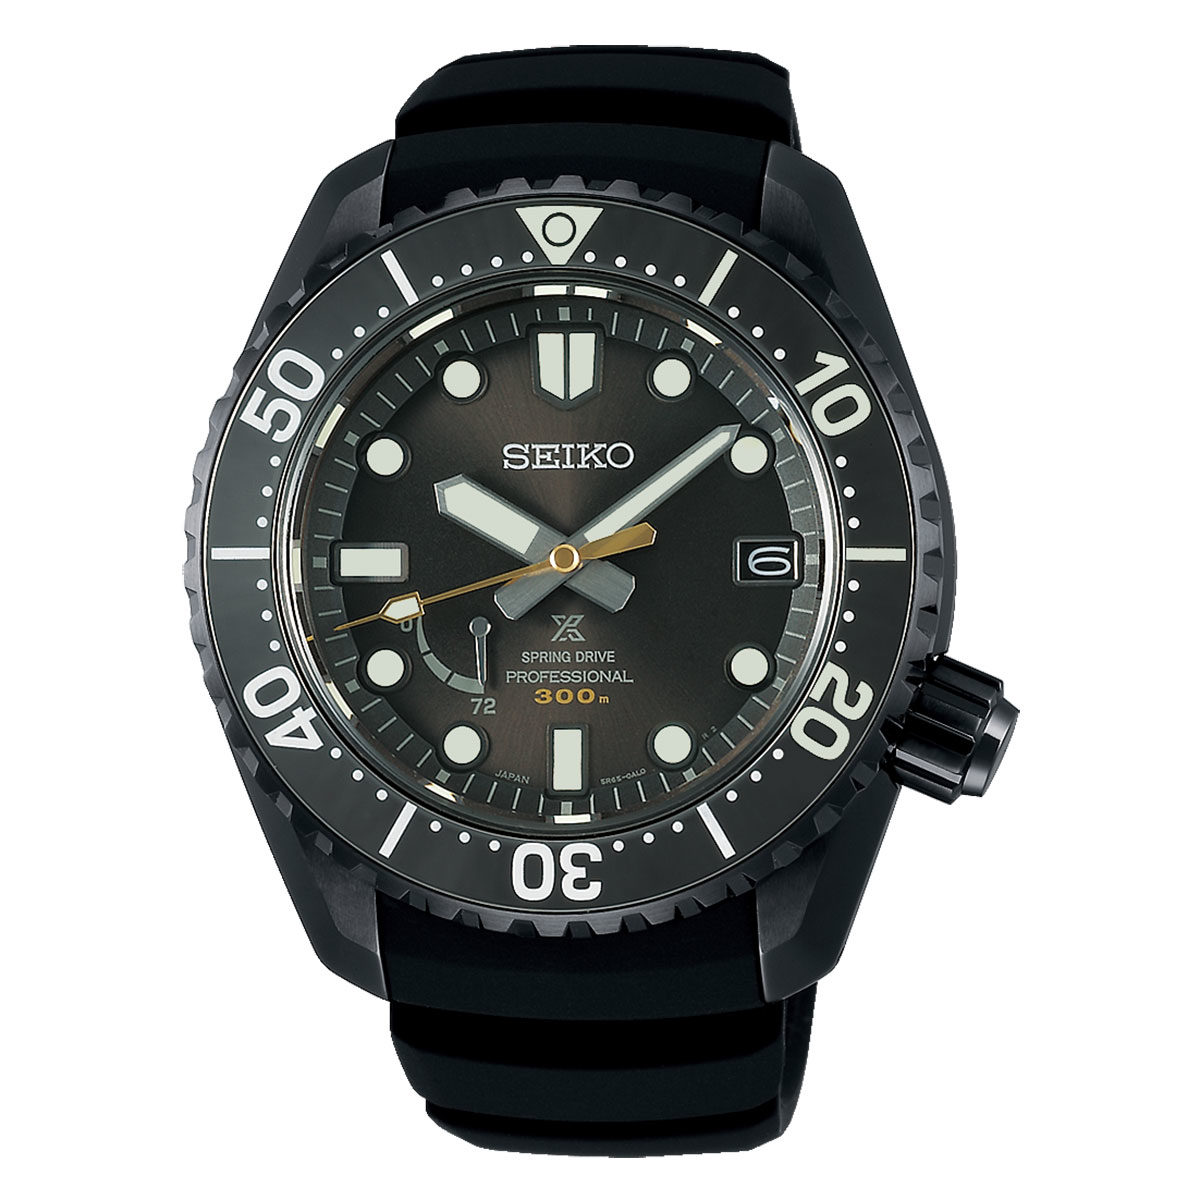 Seiko Prospex LX Line Diver's Limited Edition SNR043J1 watches for men